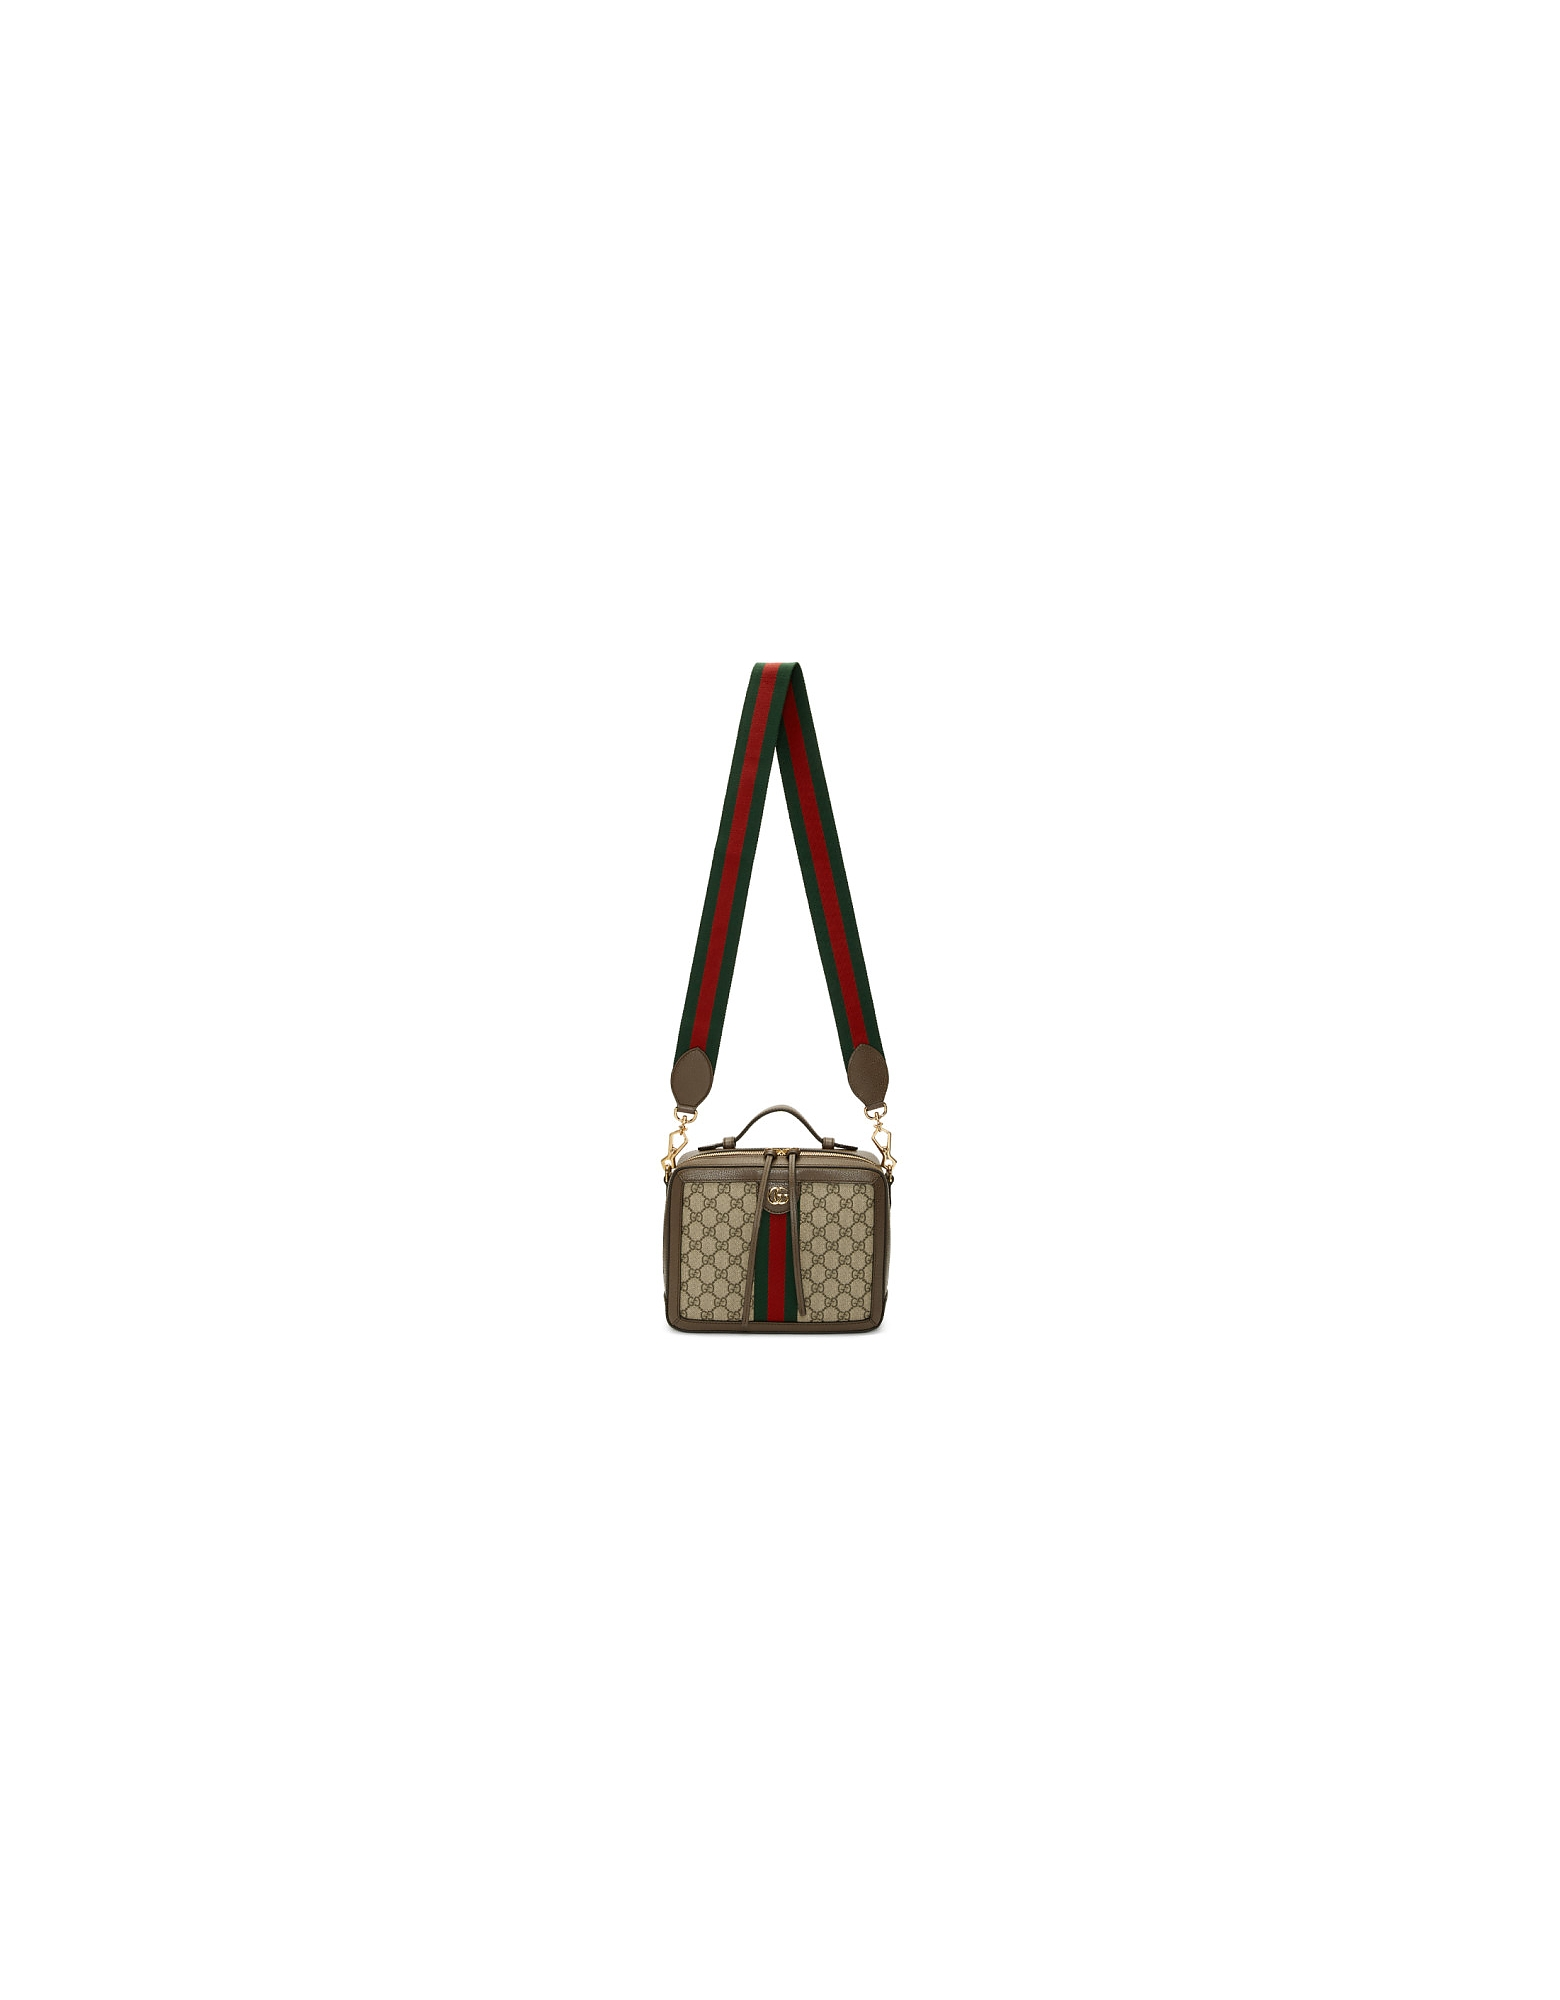 Gucci Designer Handbags, Beige Small GG Ophidia Shoulder Bag